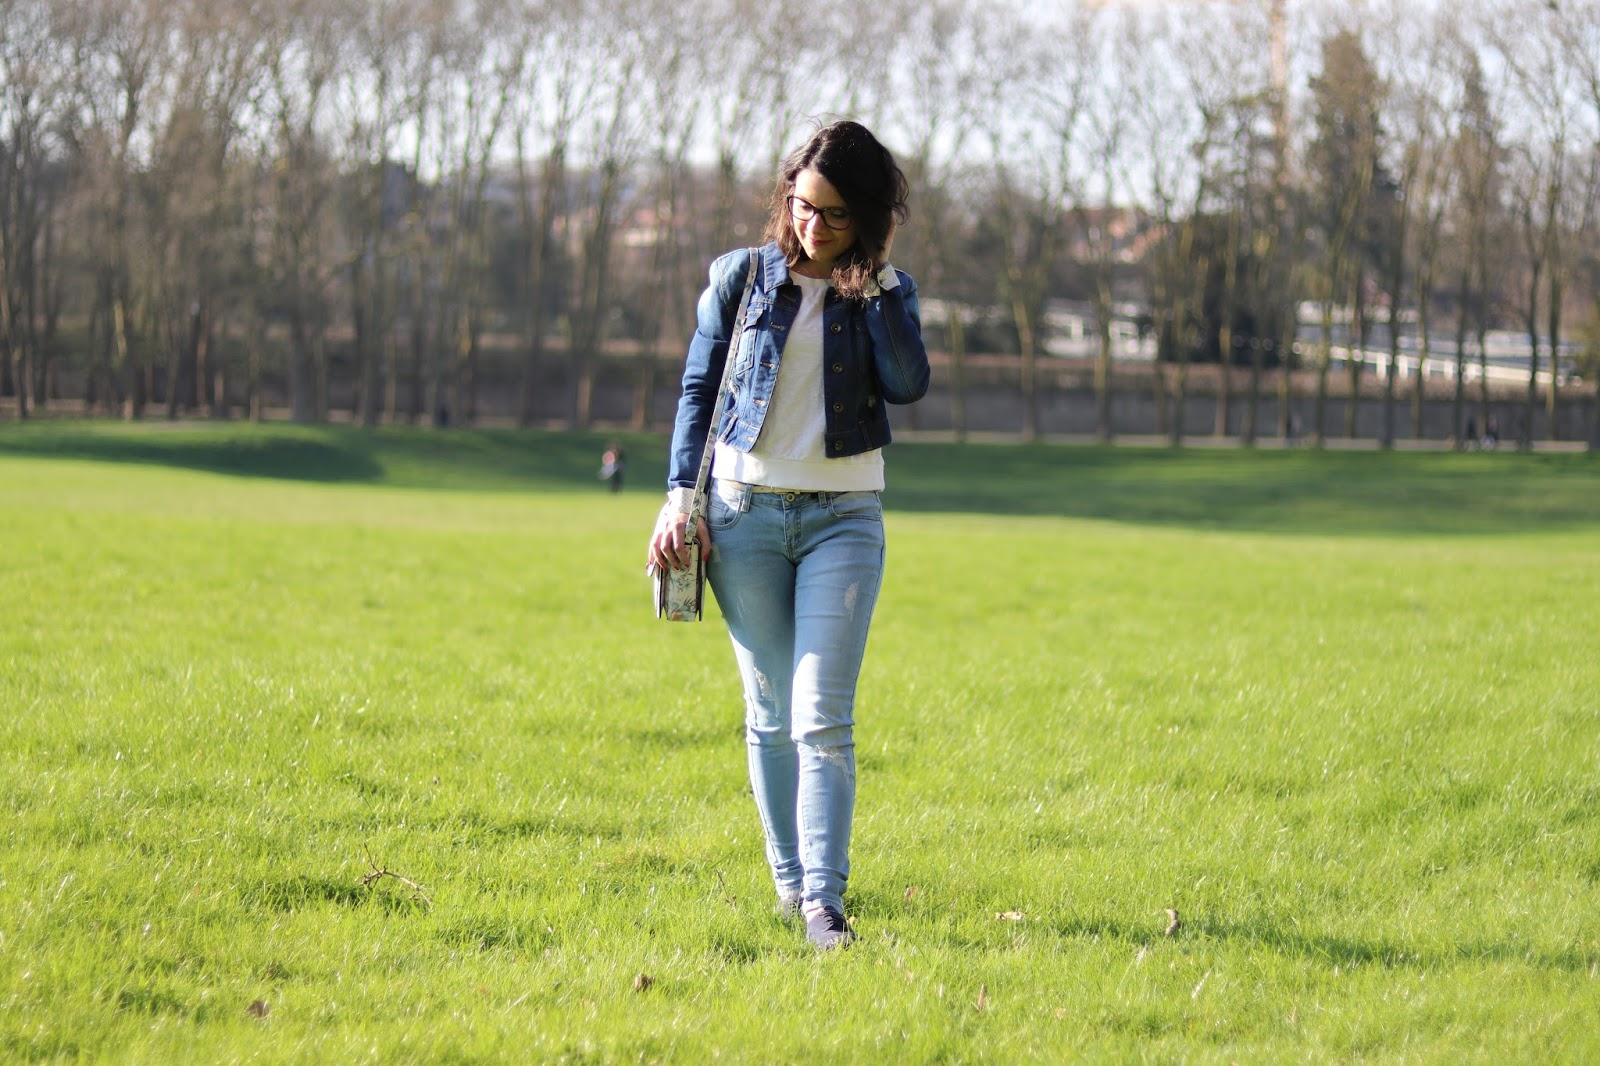 look mode femme ootd outfit of the day fleurs veste en jean shein avis babou derbies paillettes accessorize